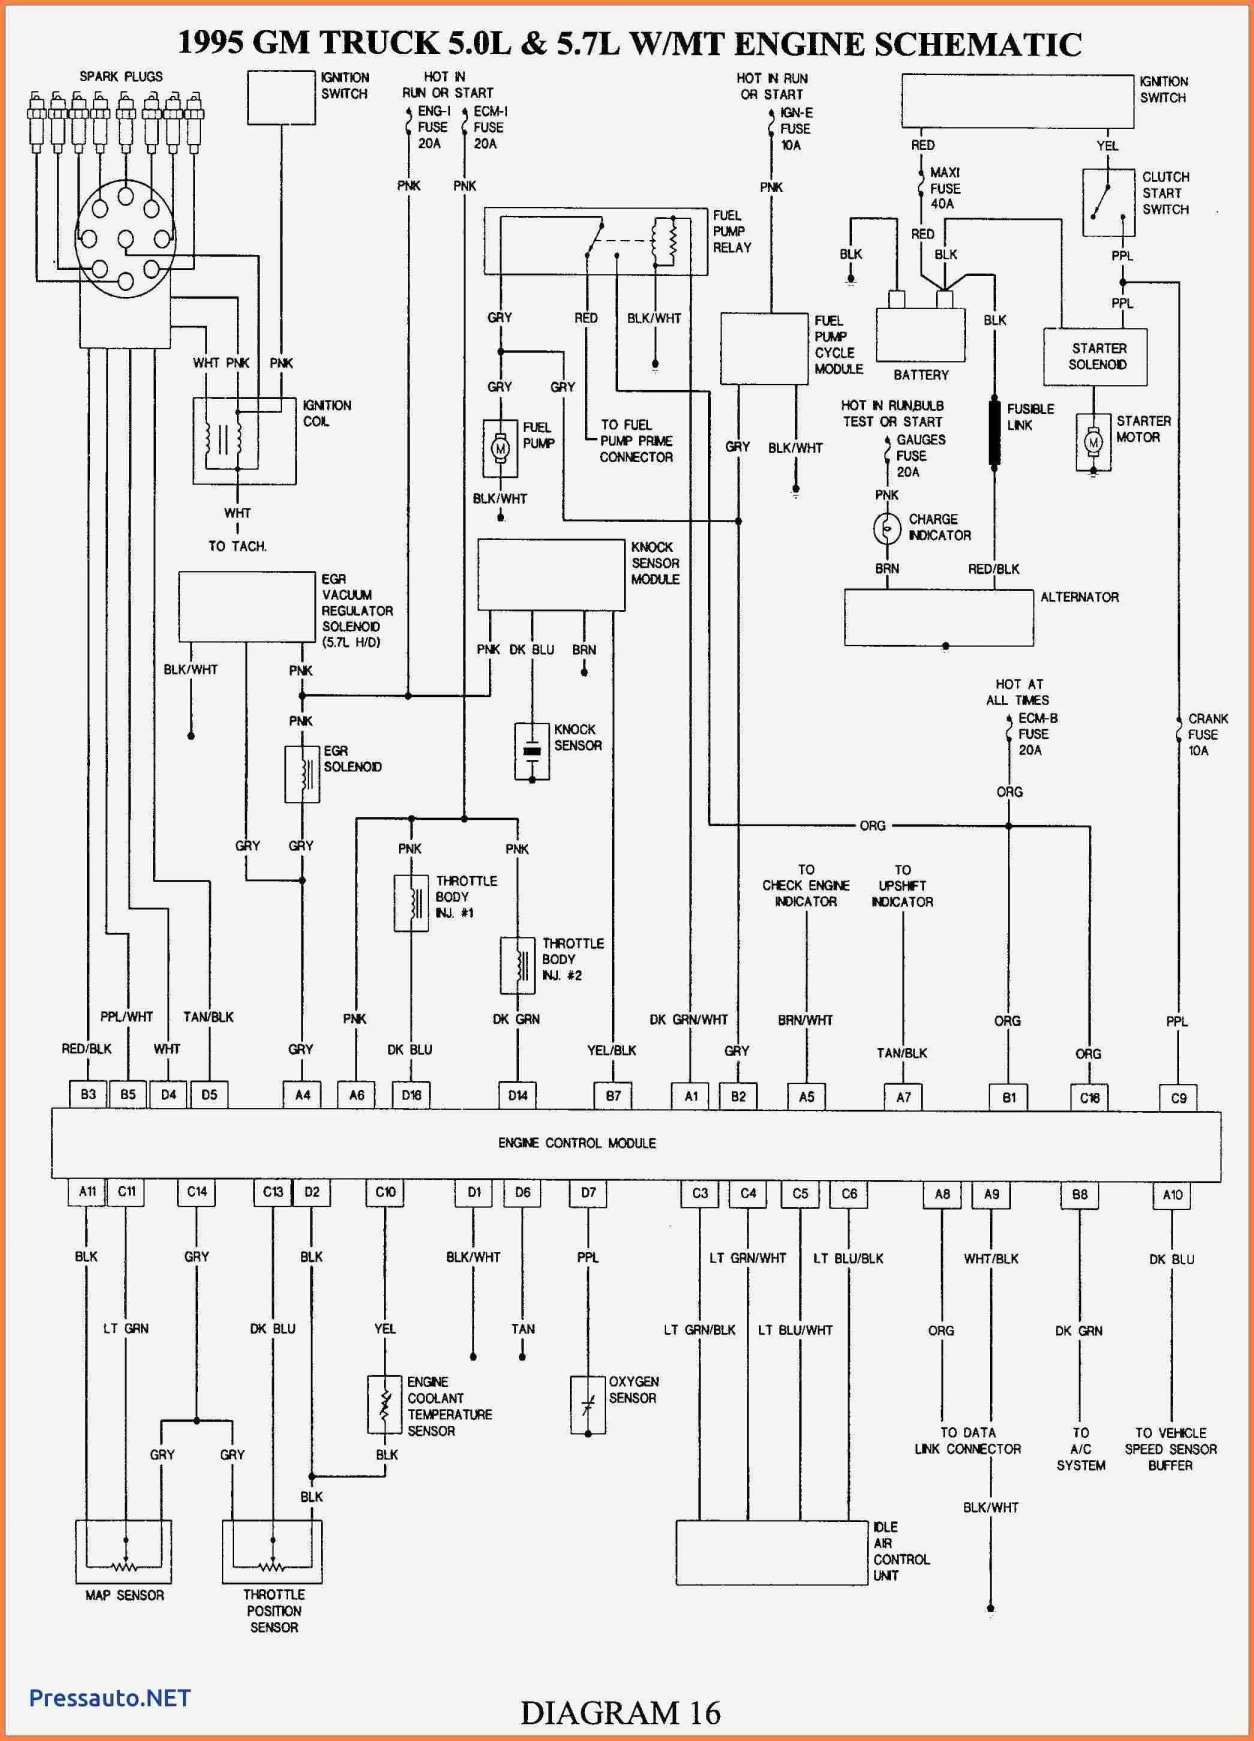 39++ Plymouth voyager wiring diagram ideas